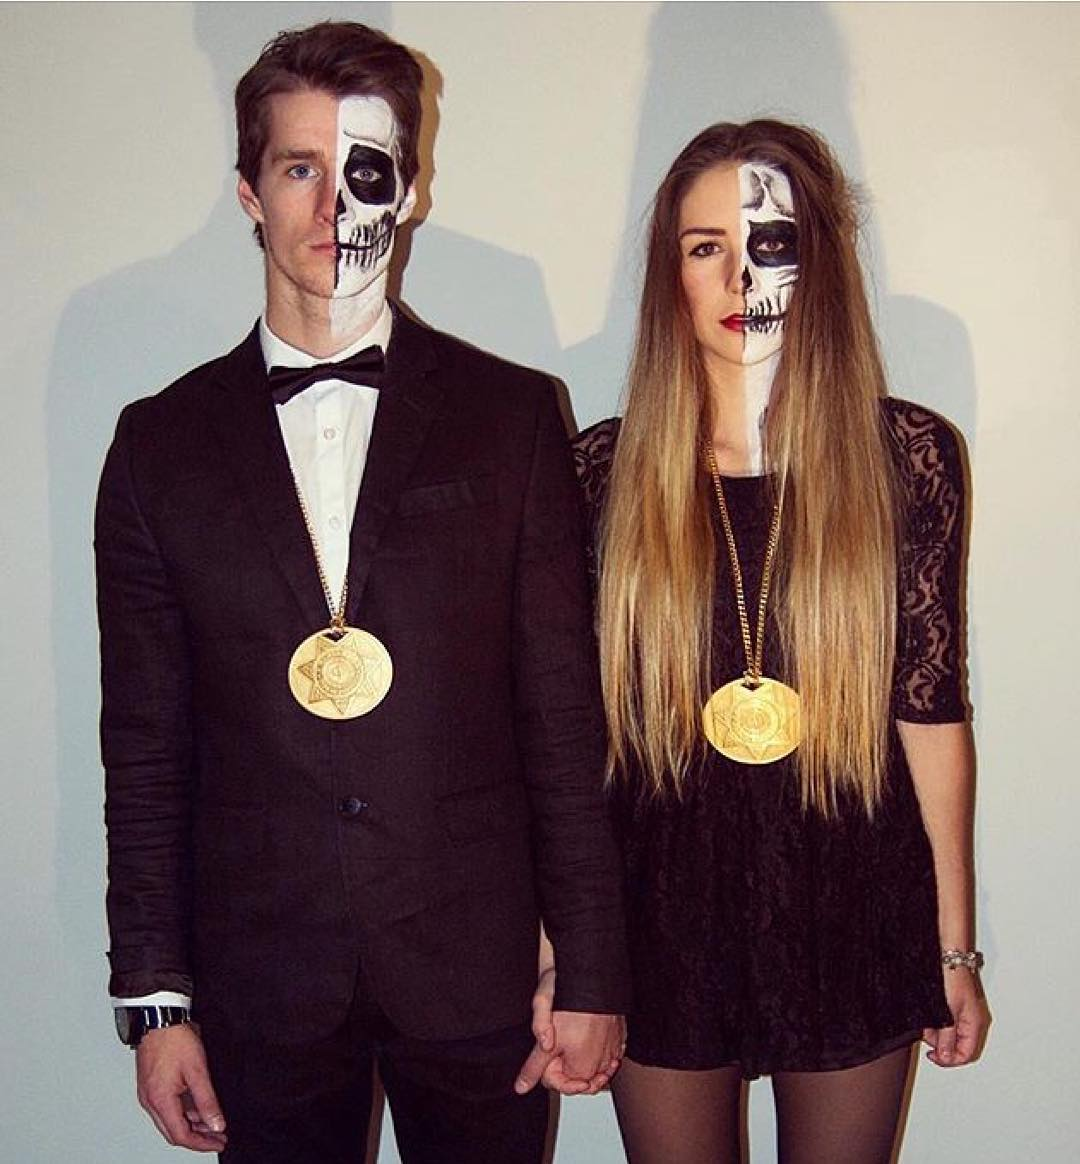 Two-time #XGames gold medalist @MaxParrot and @AlyssonXO dressed up as Day of the Dead figures for Halloween!